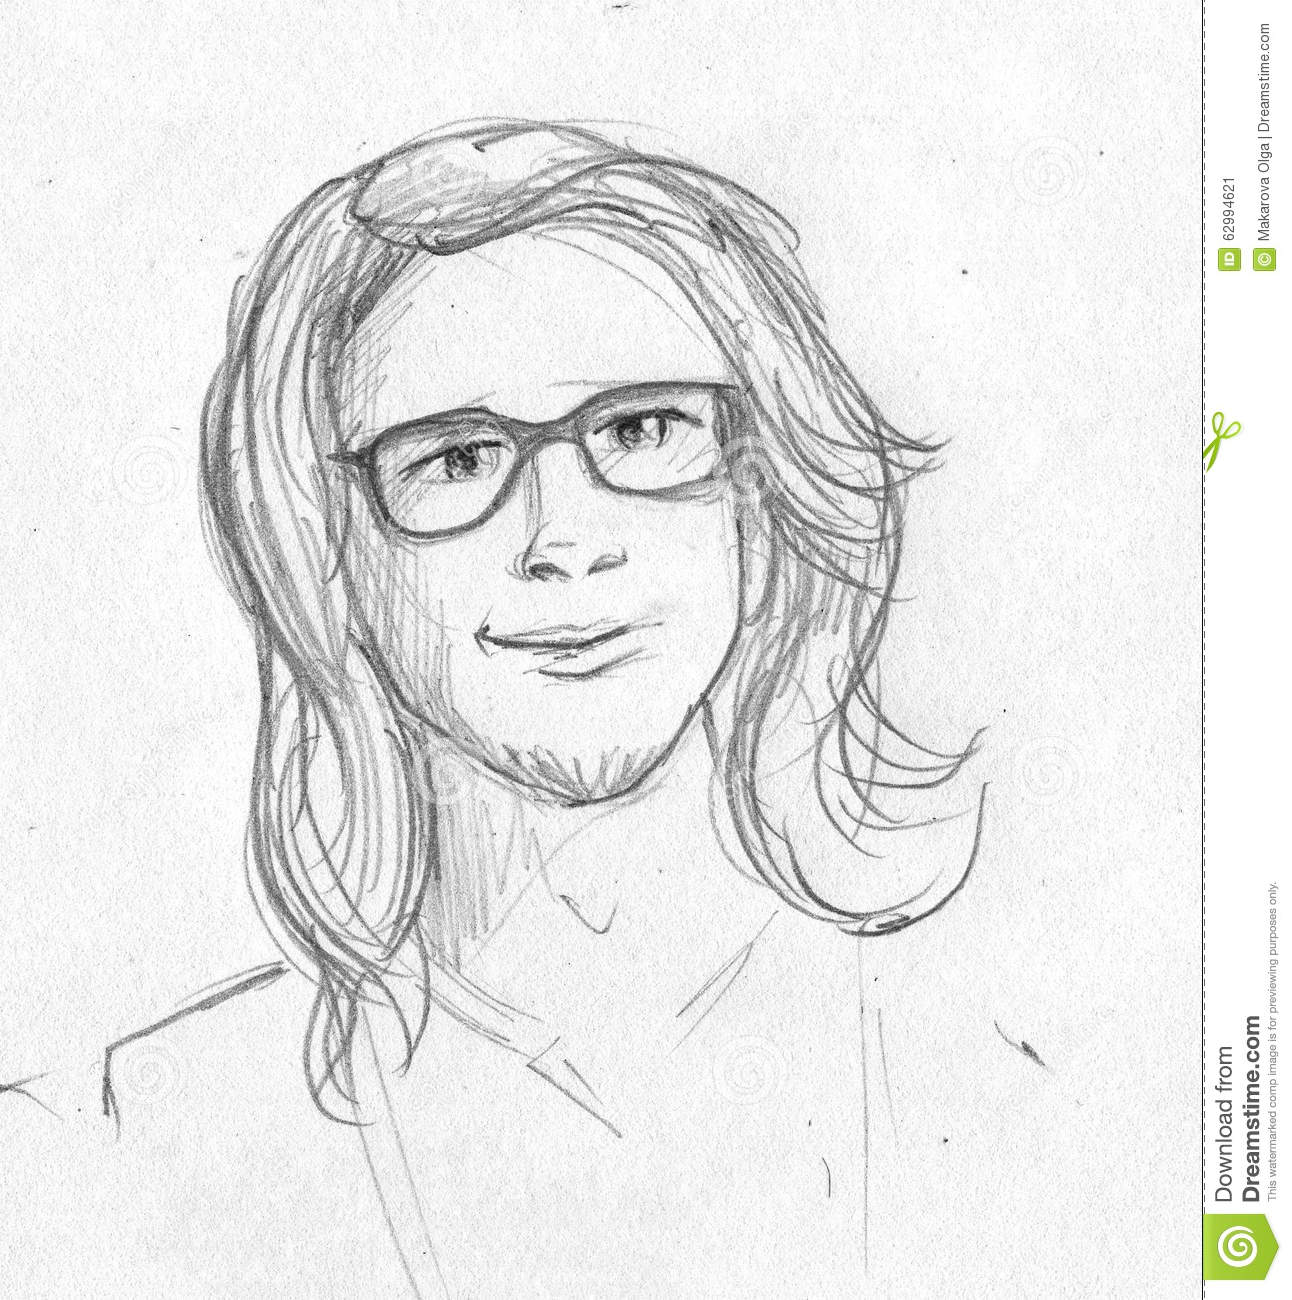 Hand drawn pencil sketch of a nerdy young man with long hair and glasses